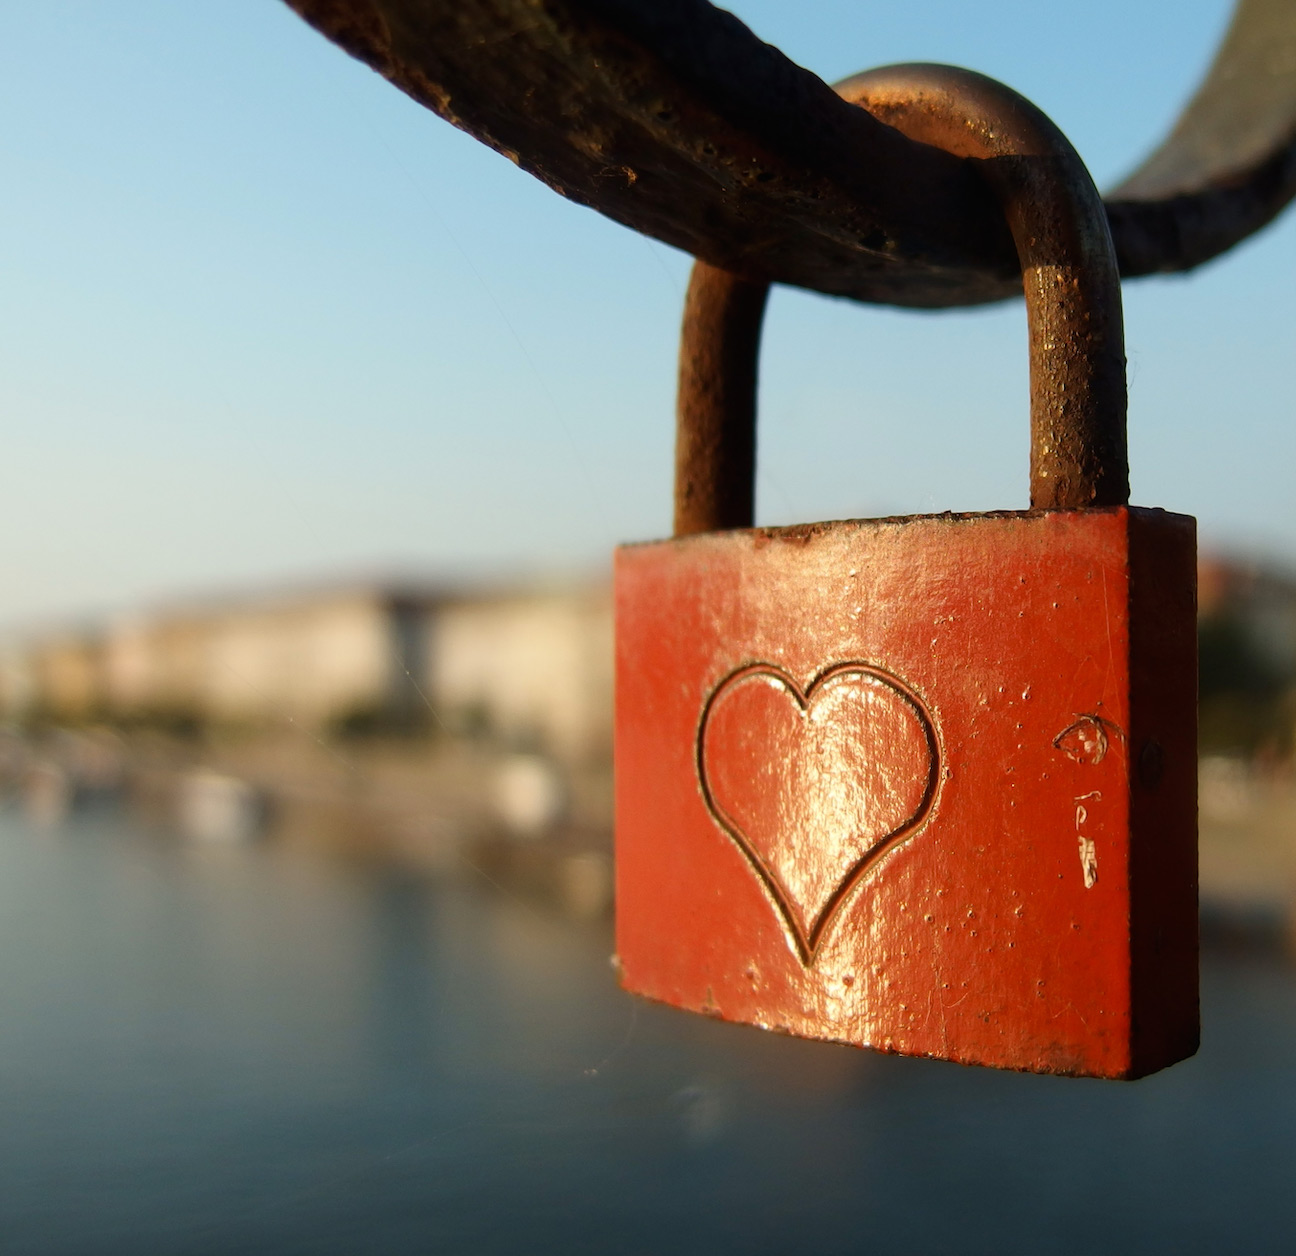 Photograph of Lock by Martin Vorel - Public Domain